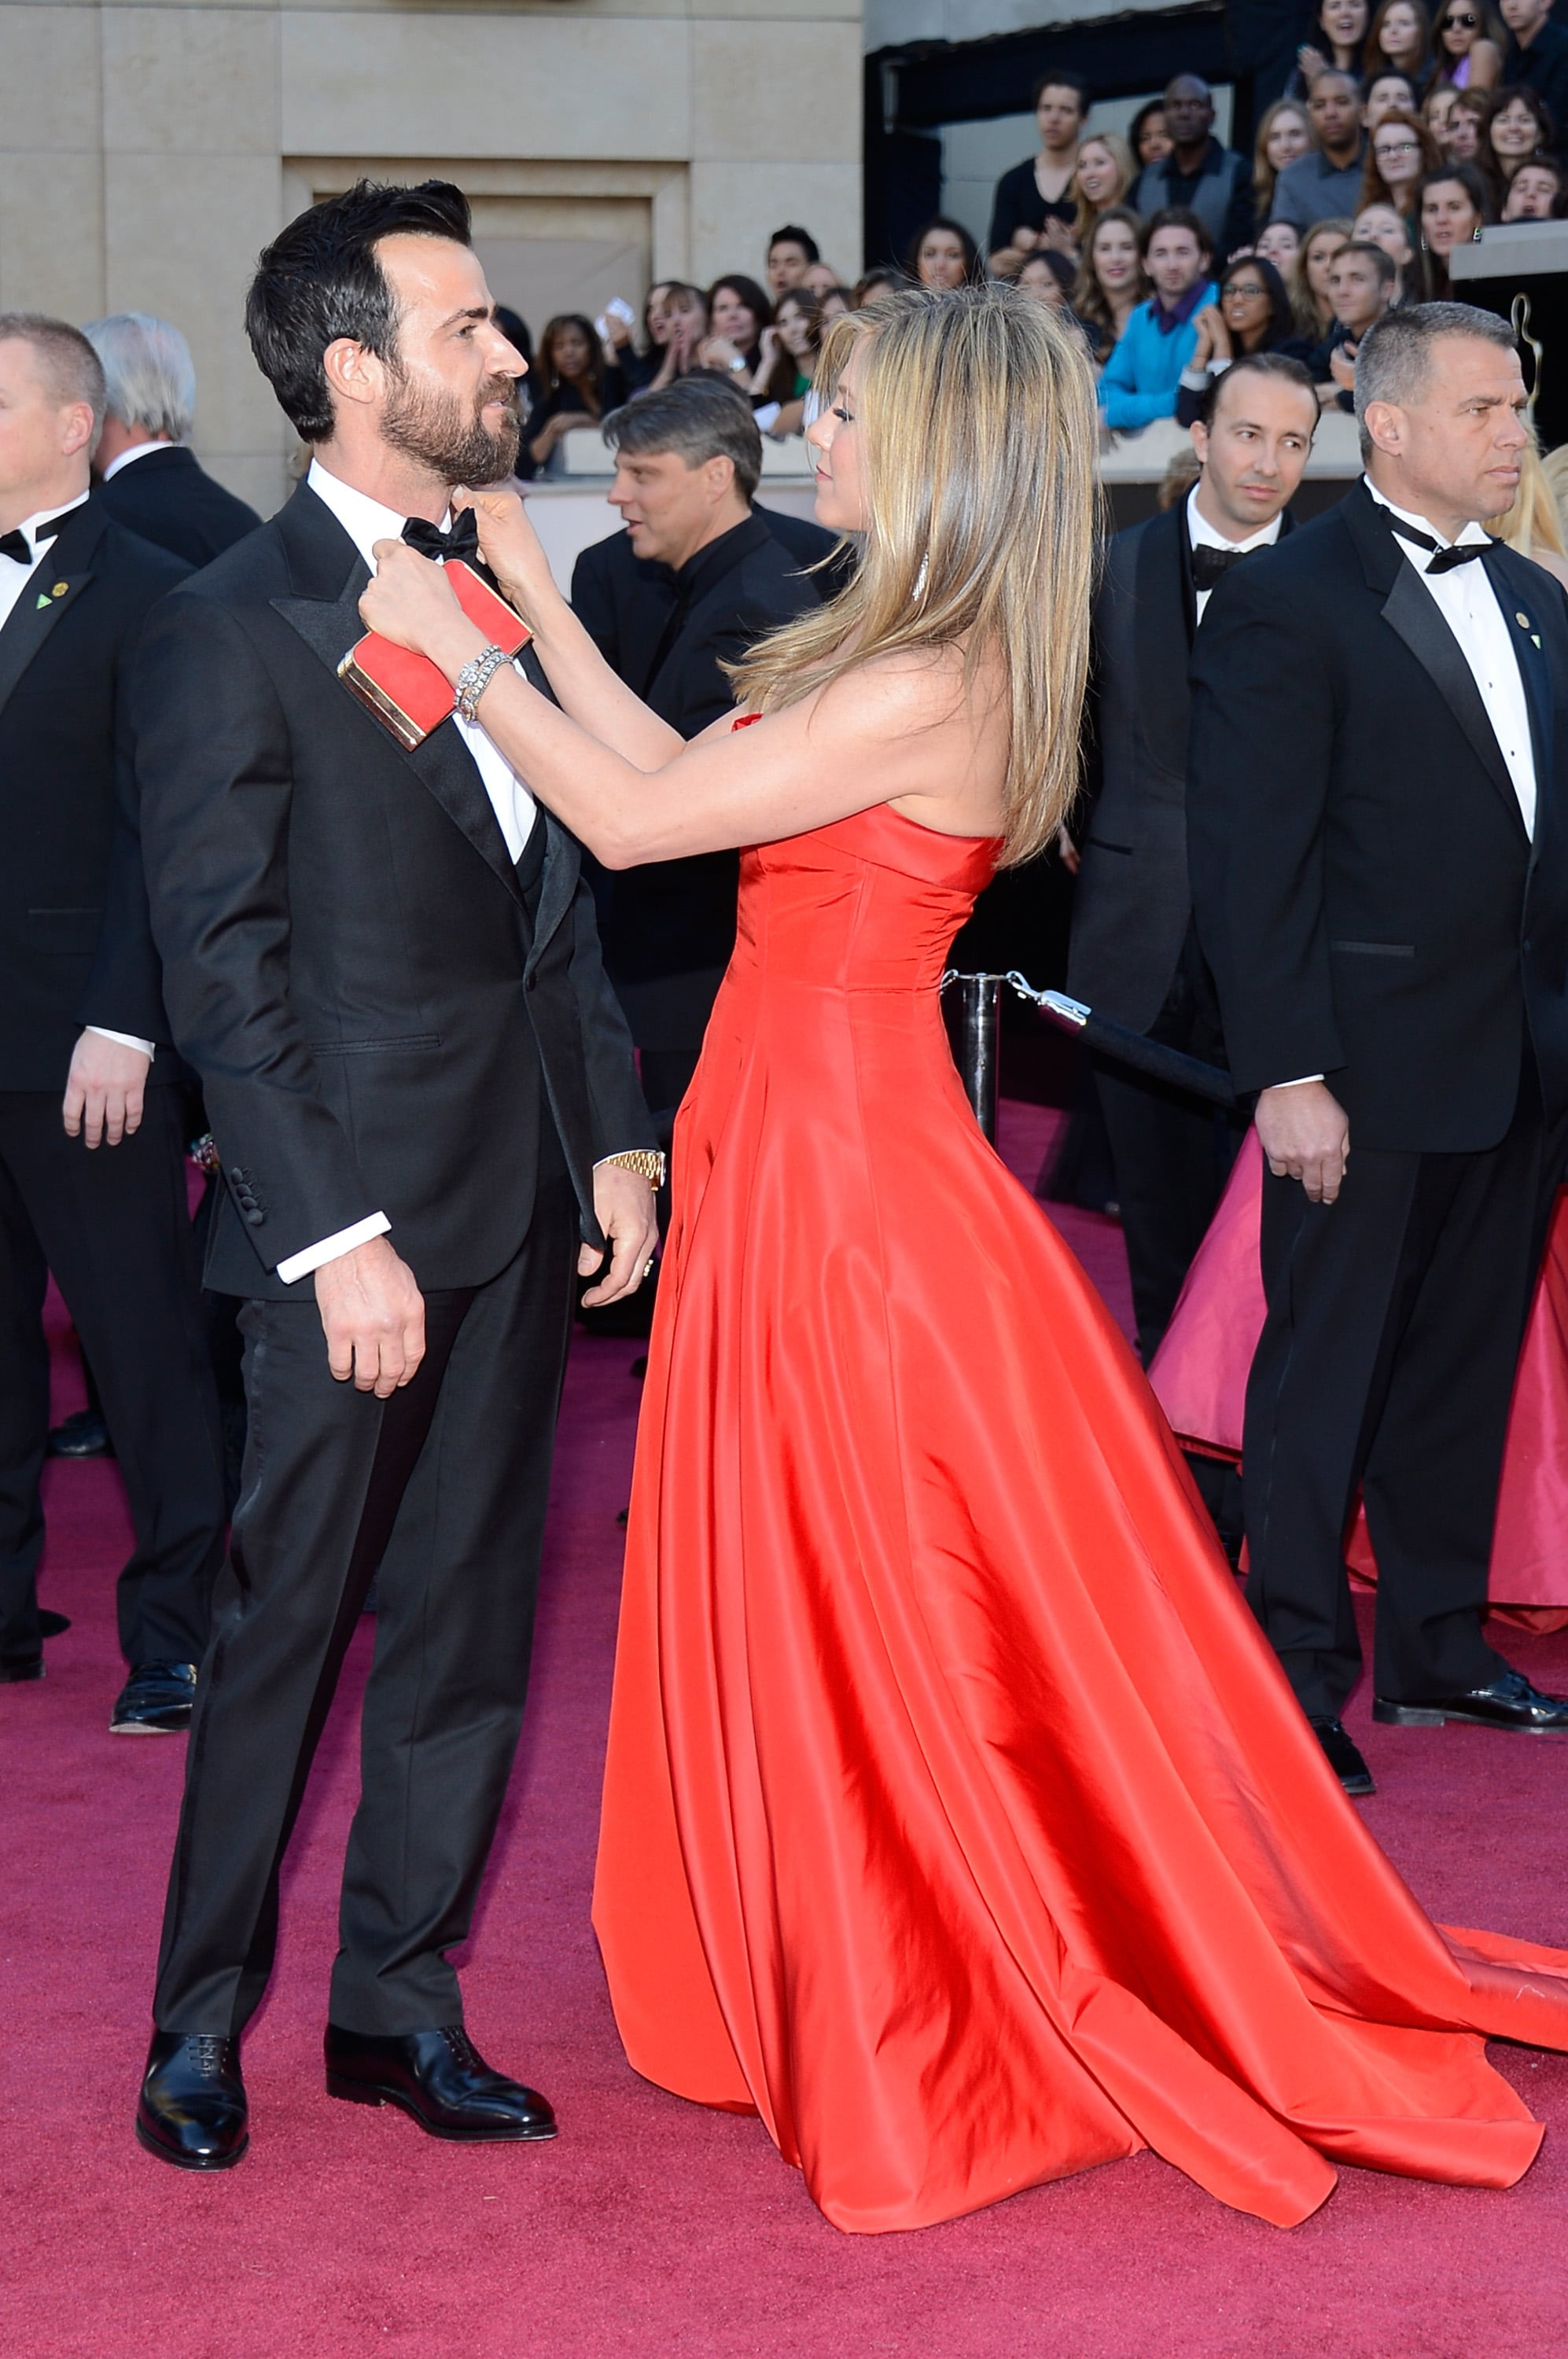 Jennifer Aniston straightened out Justin Theroux's bow tie on the Oscars red carpet.